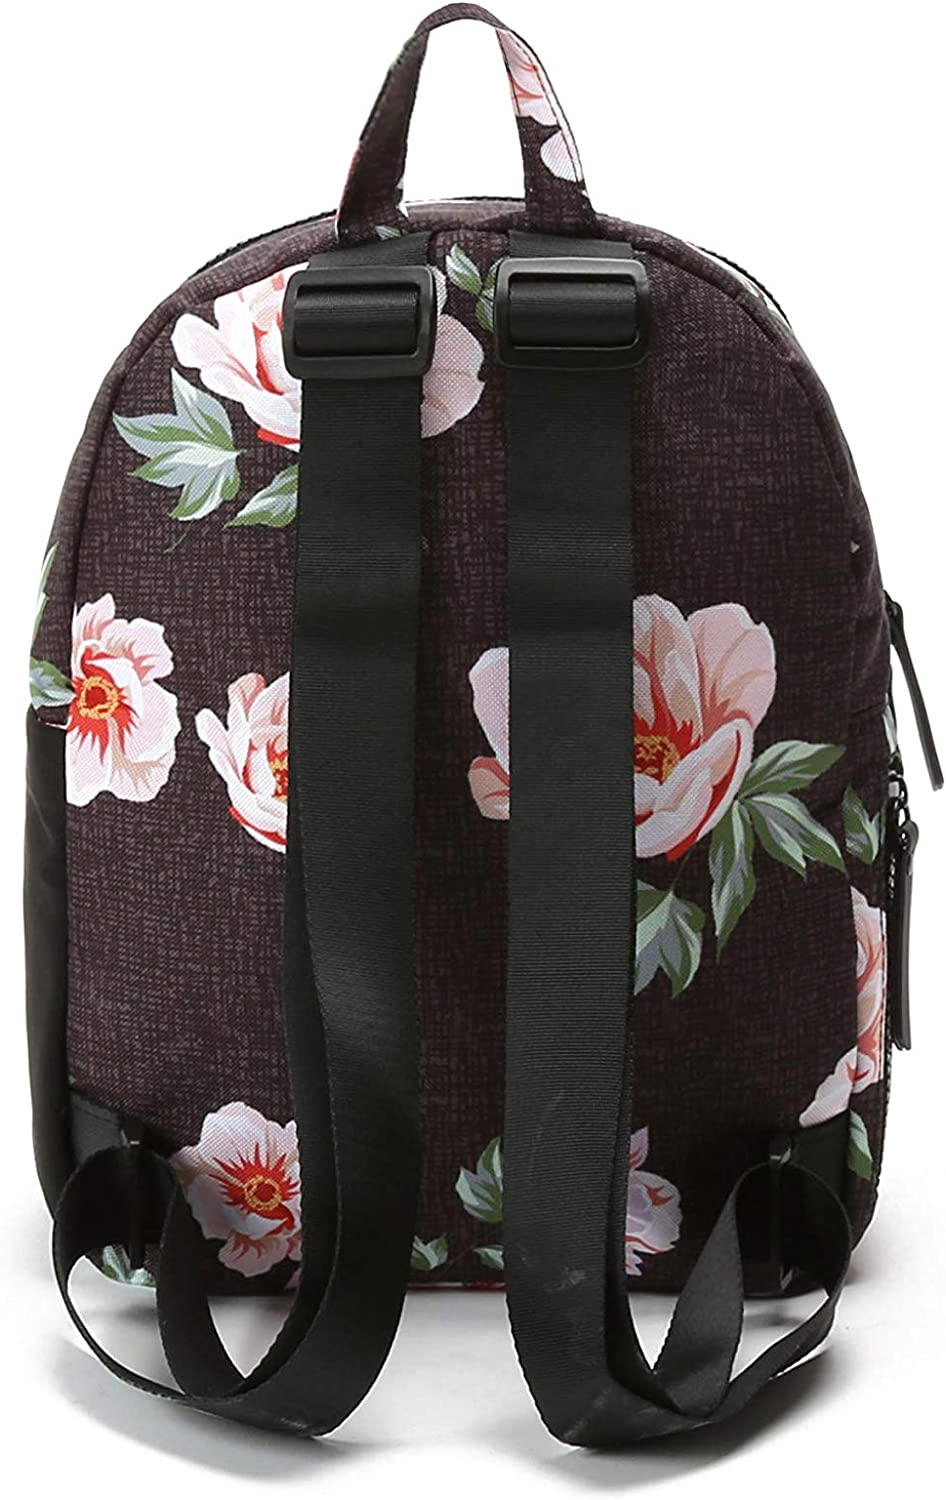 Vooray Lexi Small Backpack Daypack for Women